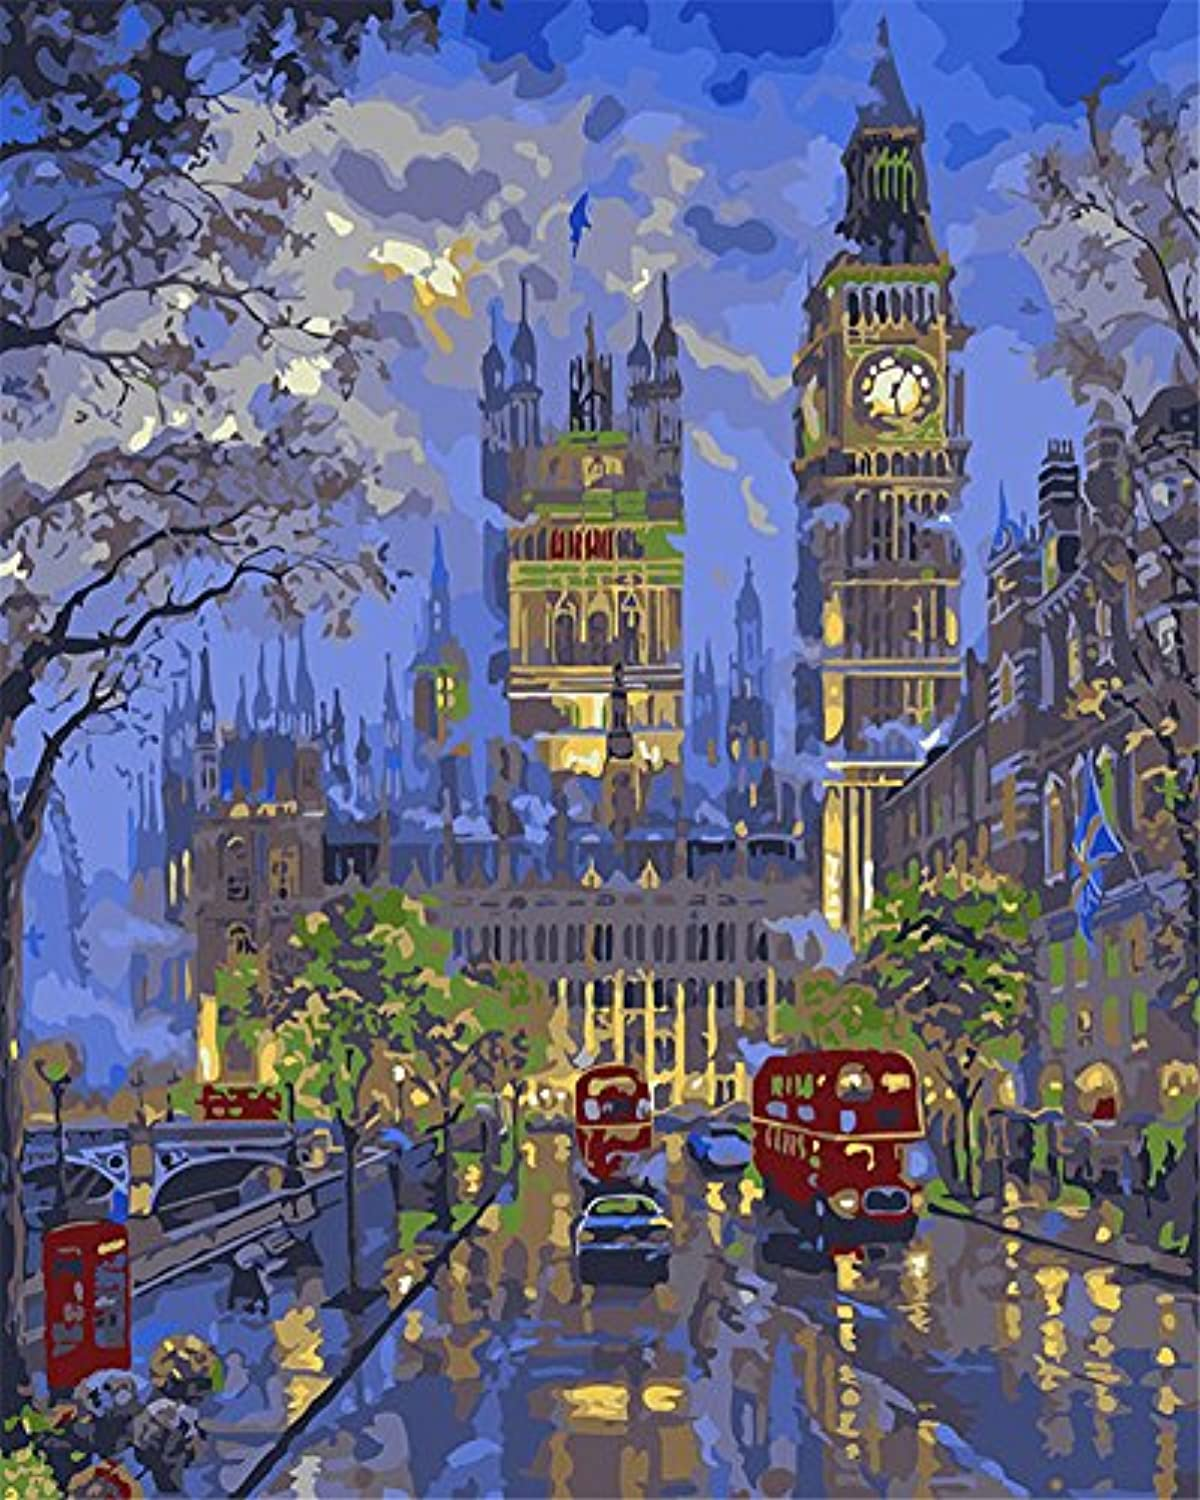 CaptainCrafts New Paint by Numbers 16x20 for Adults, Kids LINEN Canvas - London Night Scene, City Streets (With Frame)